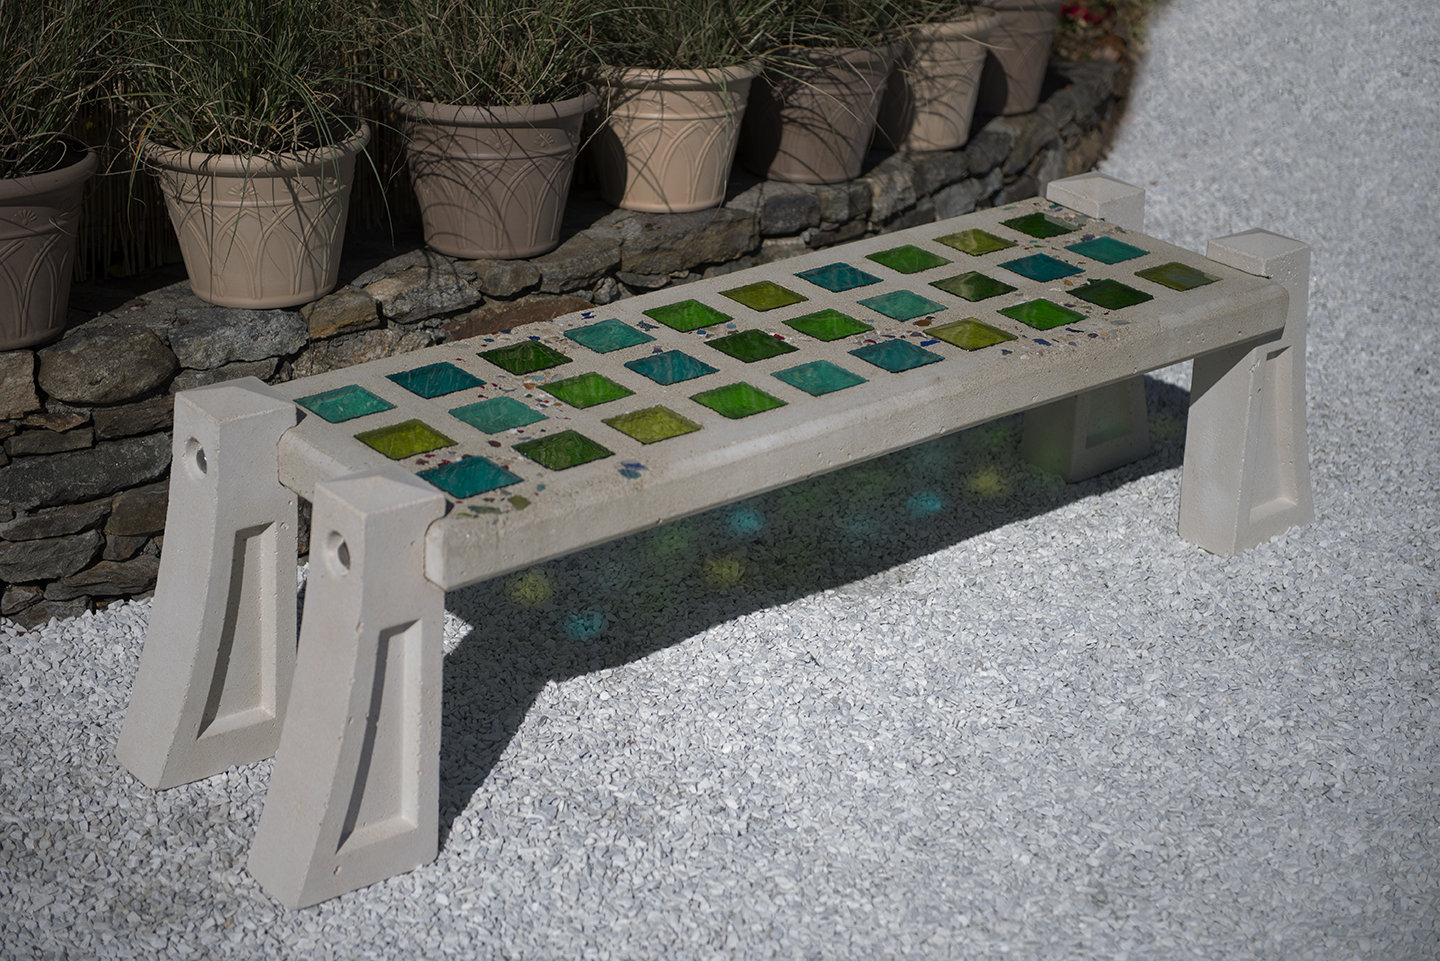 Rain Forest Greens Skylight Bench With Small Squares By Terence S. Dubreuil  (Art Glass U0026 Concrete Bench) | Artful Home